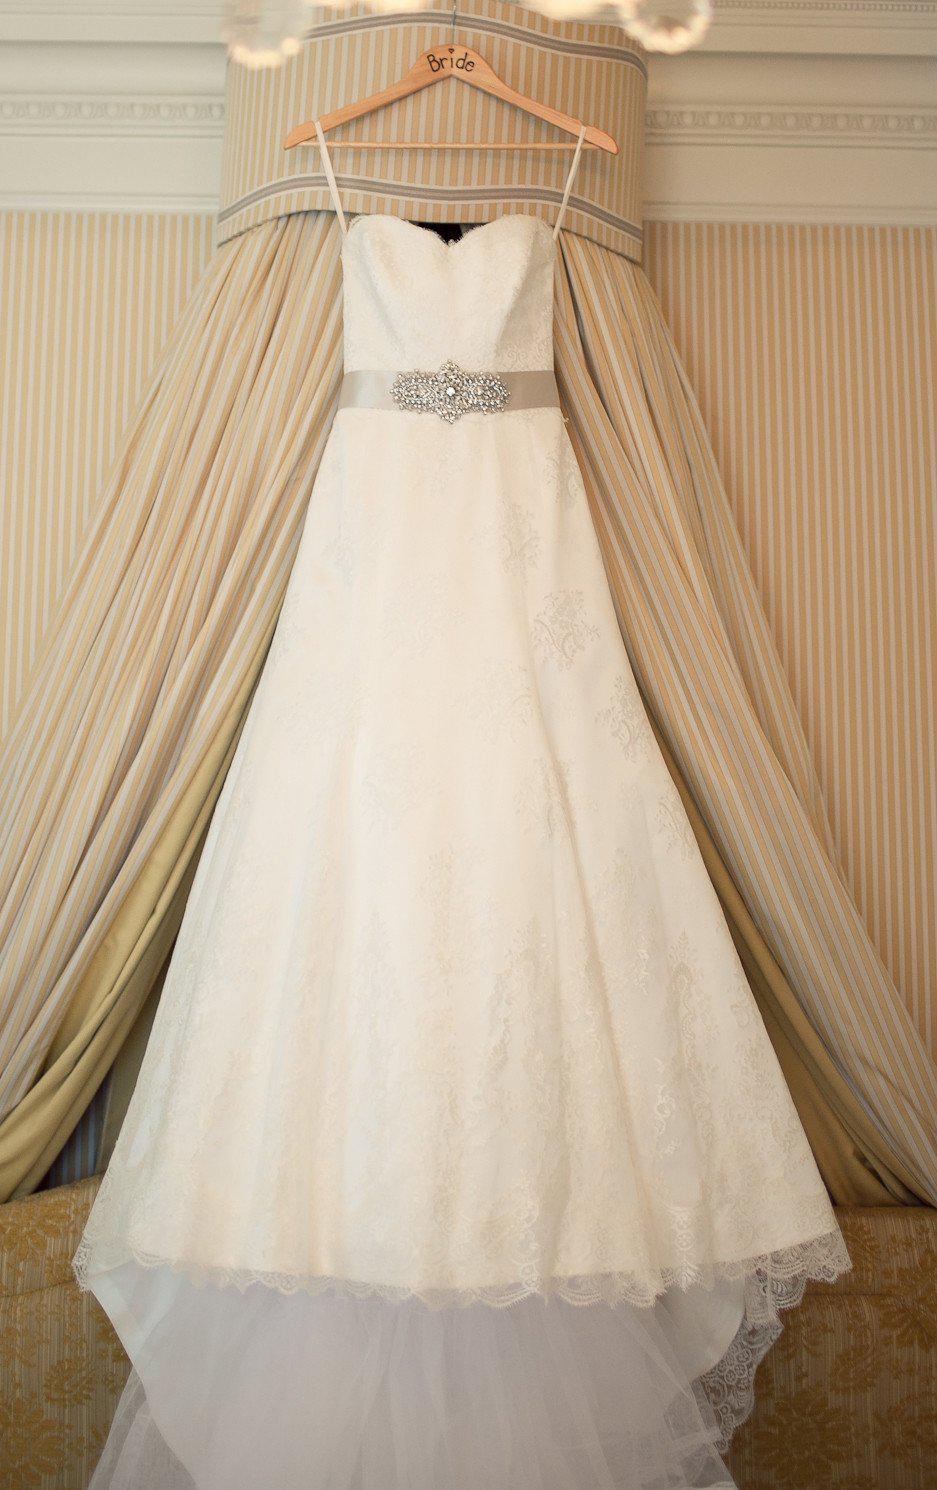 Suzanne Neville Lace Strapless A-line Wedding Dress - Suzanne Neville - Nearly Newlywed Bridal Boutique - 1